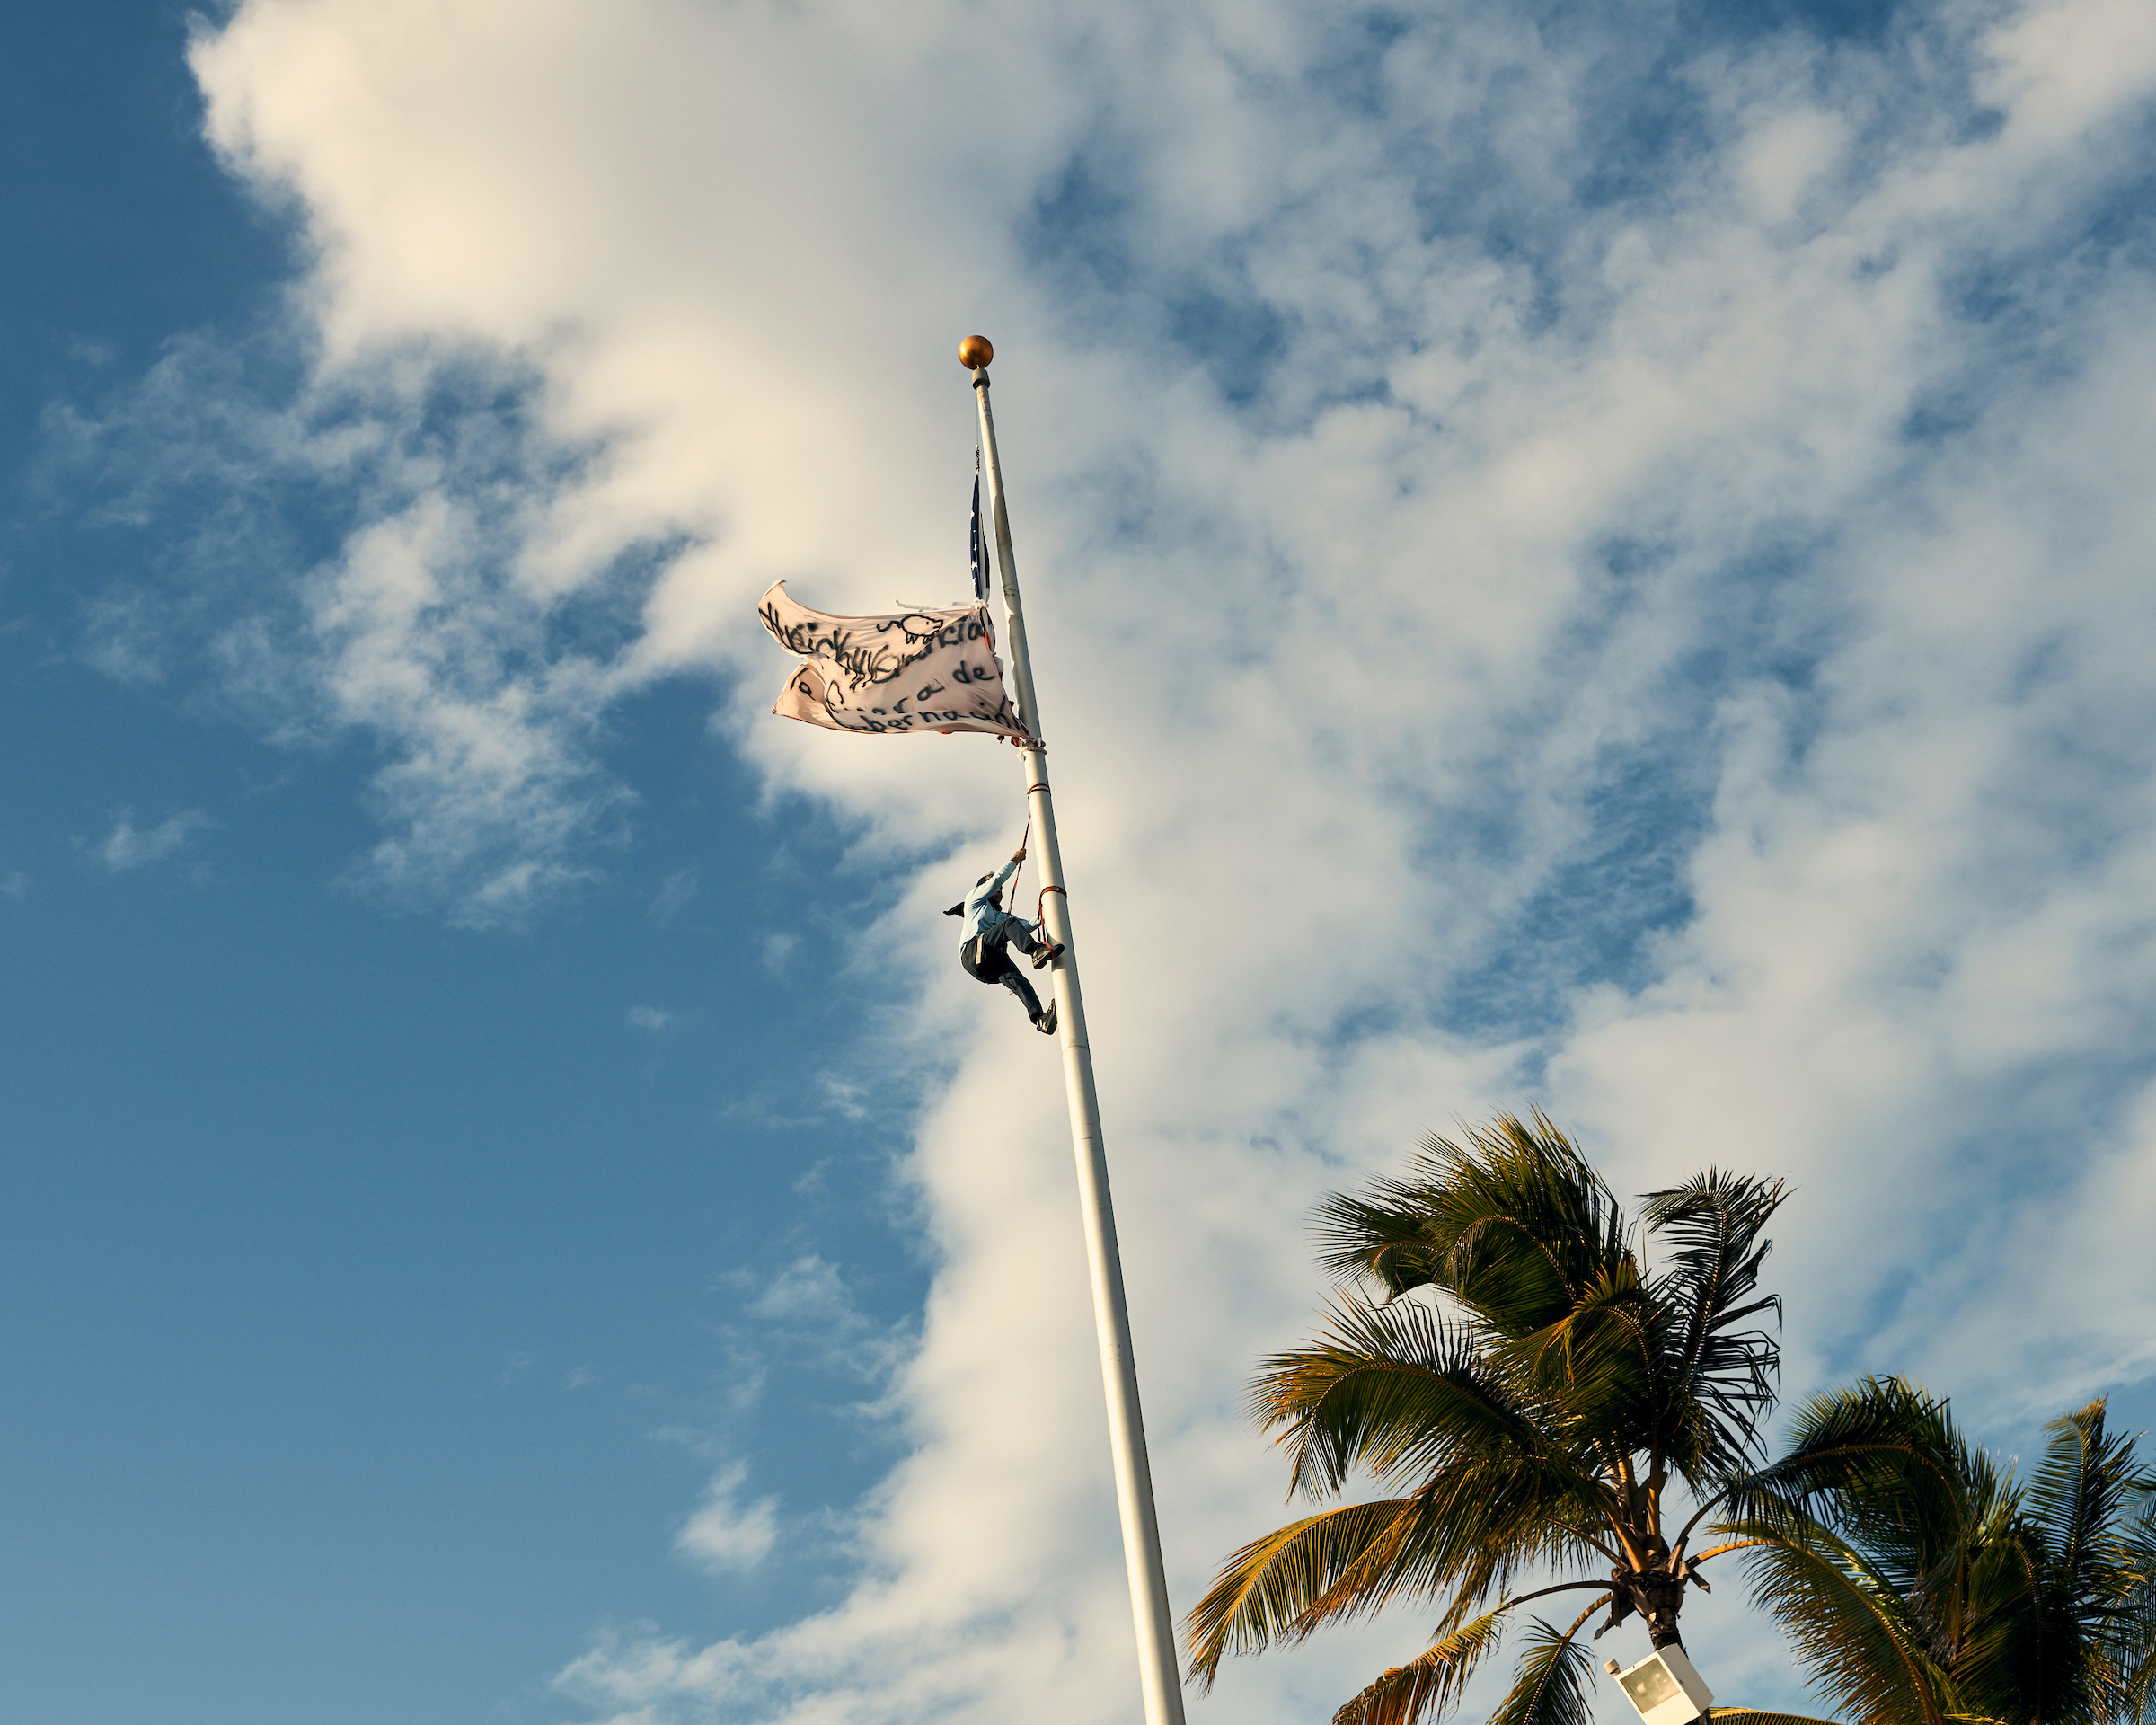 A protester scales a flag pole during a protest calling for Governor Ricardo Rosselló's resignation in the wake of  chatgate  in San Juan on July 17, 2019.